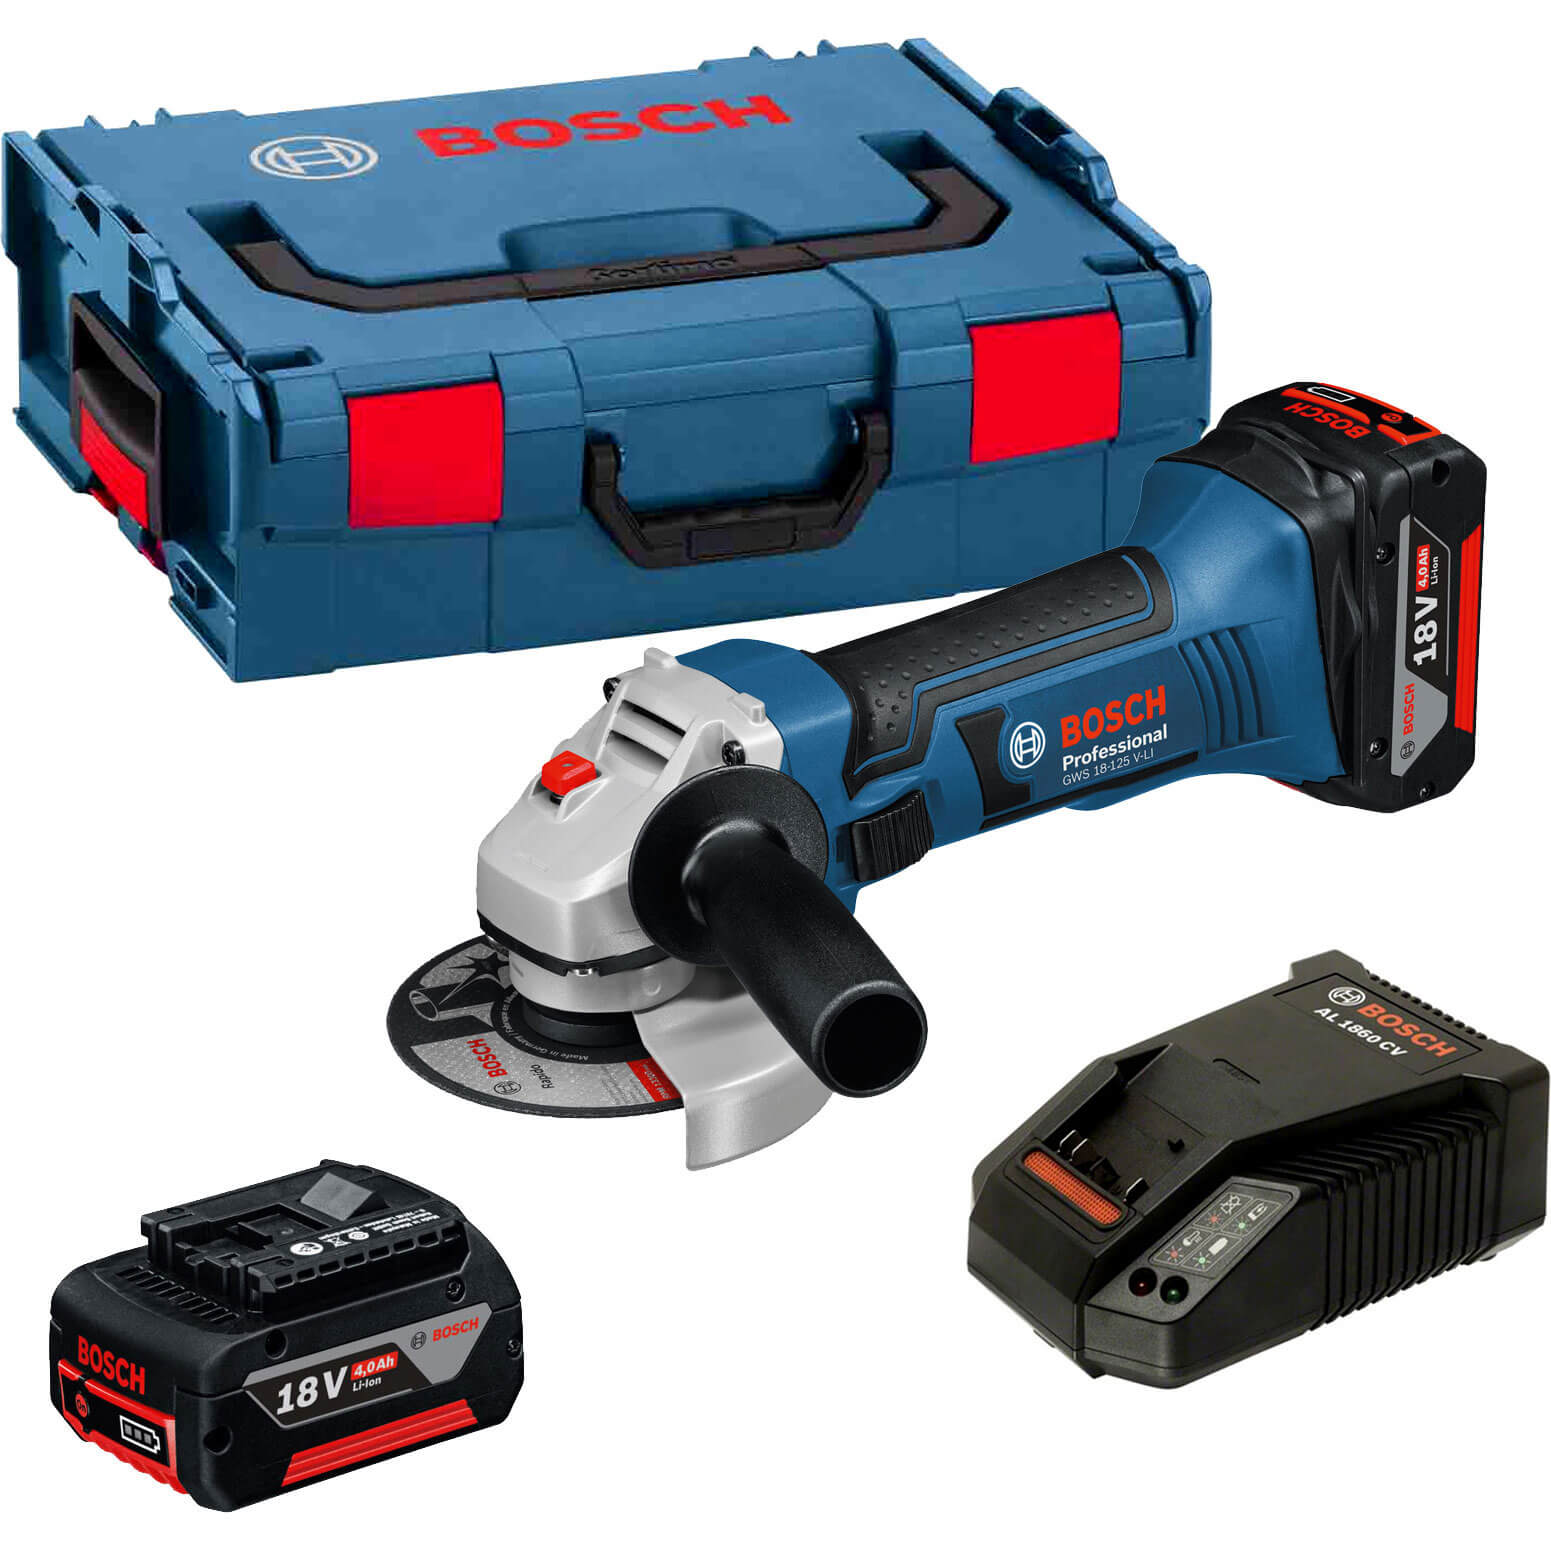 bosch gws 18 125 v li 18v cordless angle grinder 125mm 5 disc with l boxx 2 lithium ion. Black Bedroom Furniture Sets. Home Design Ideas